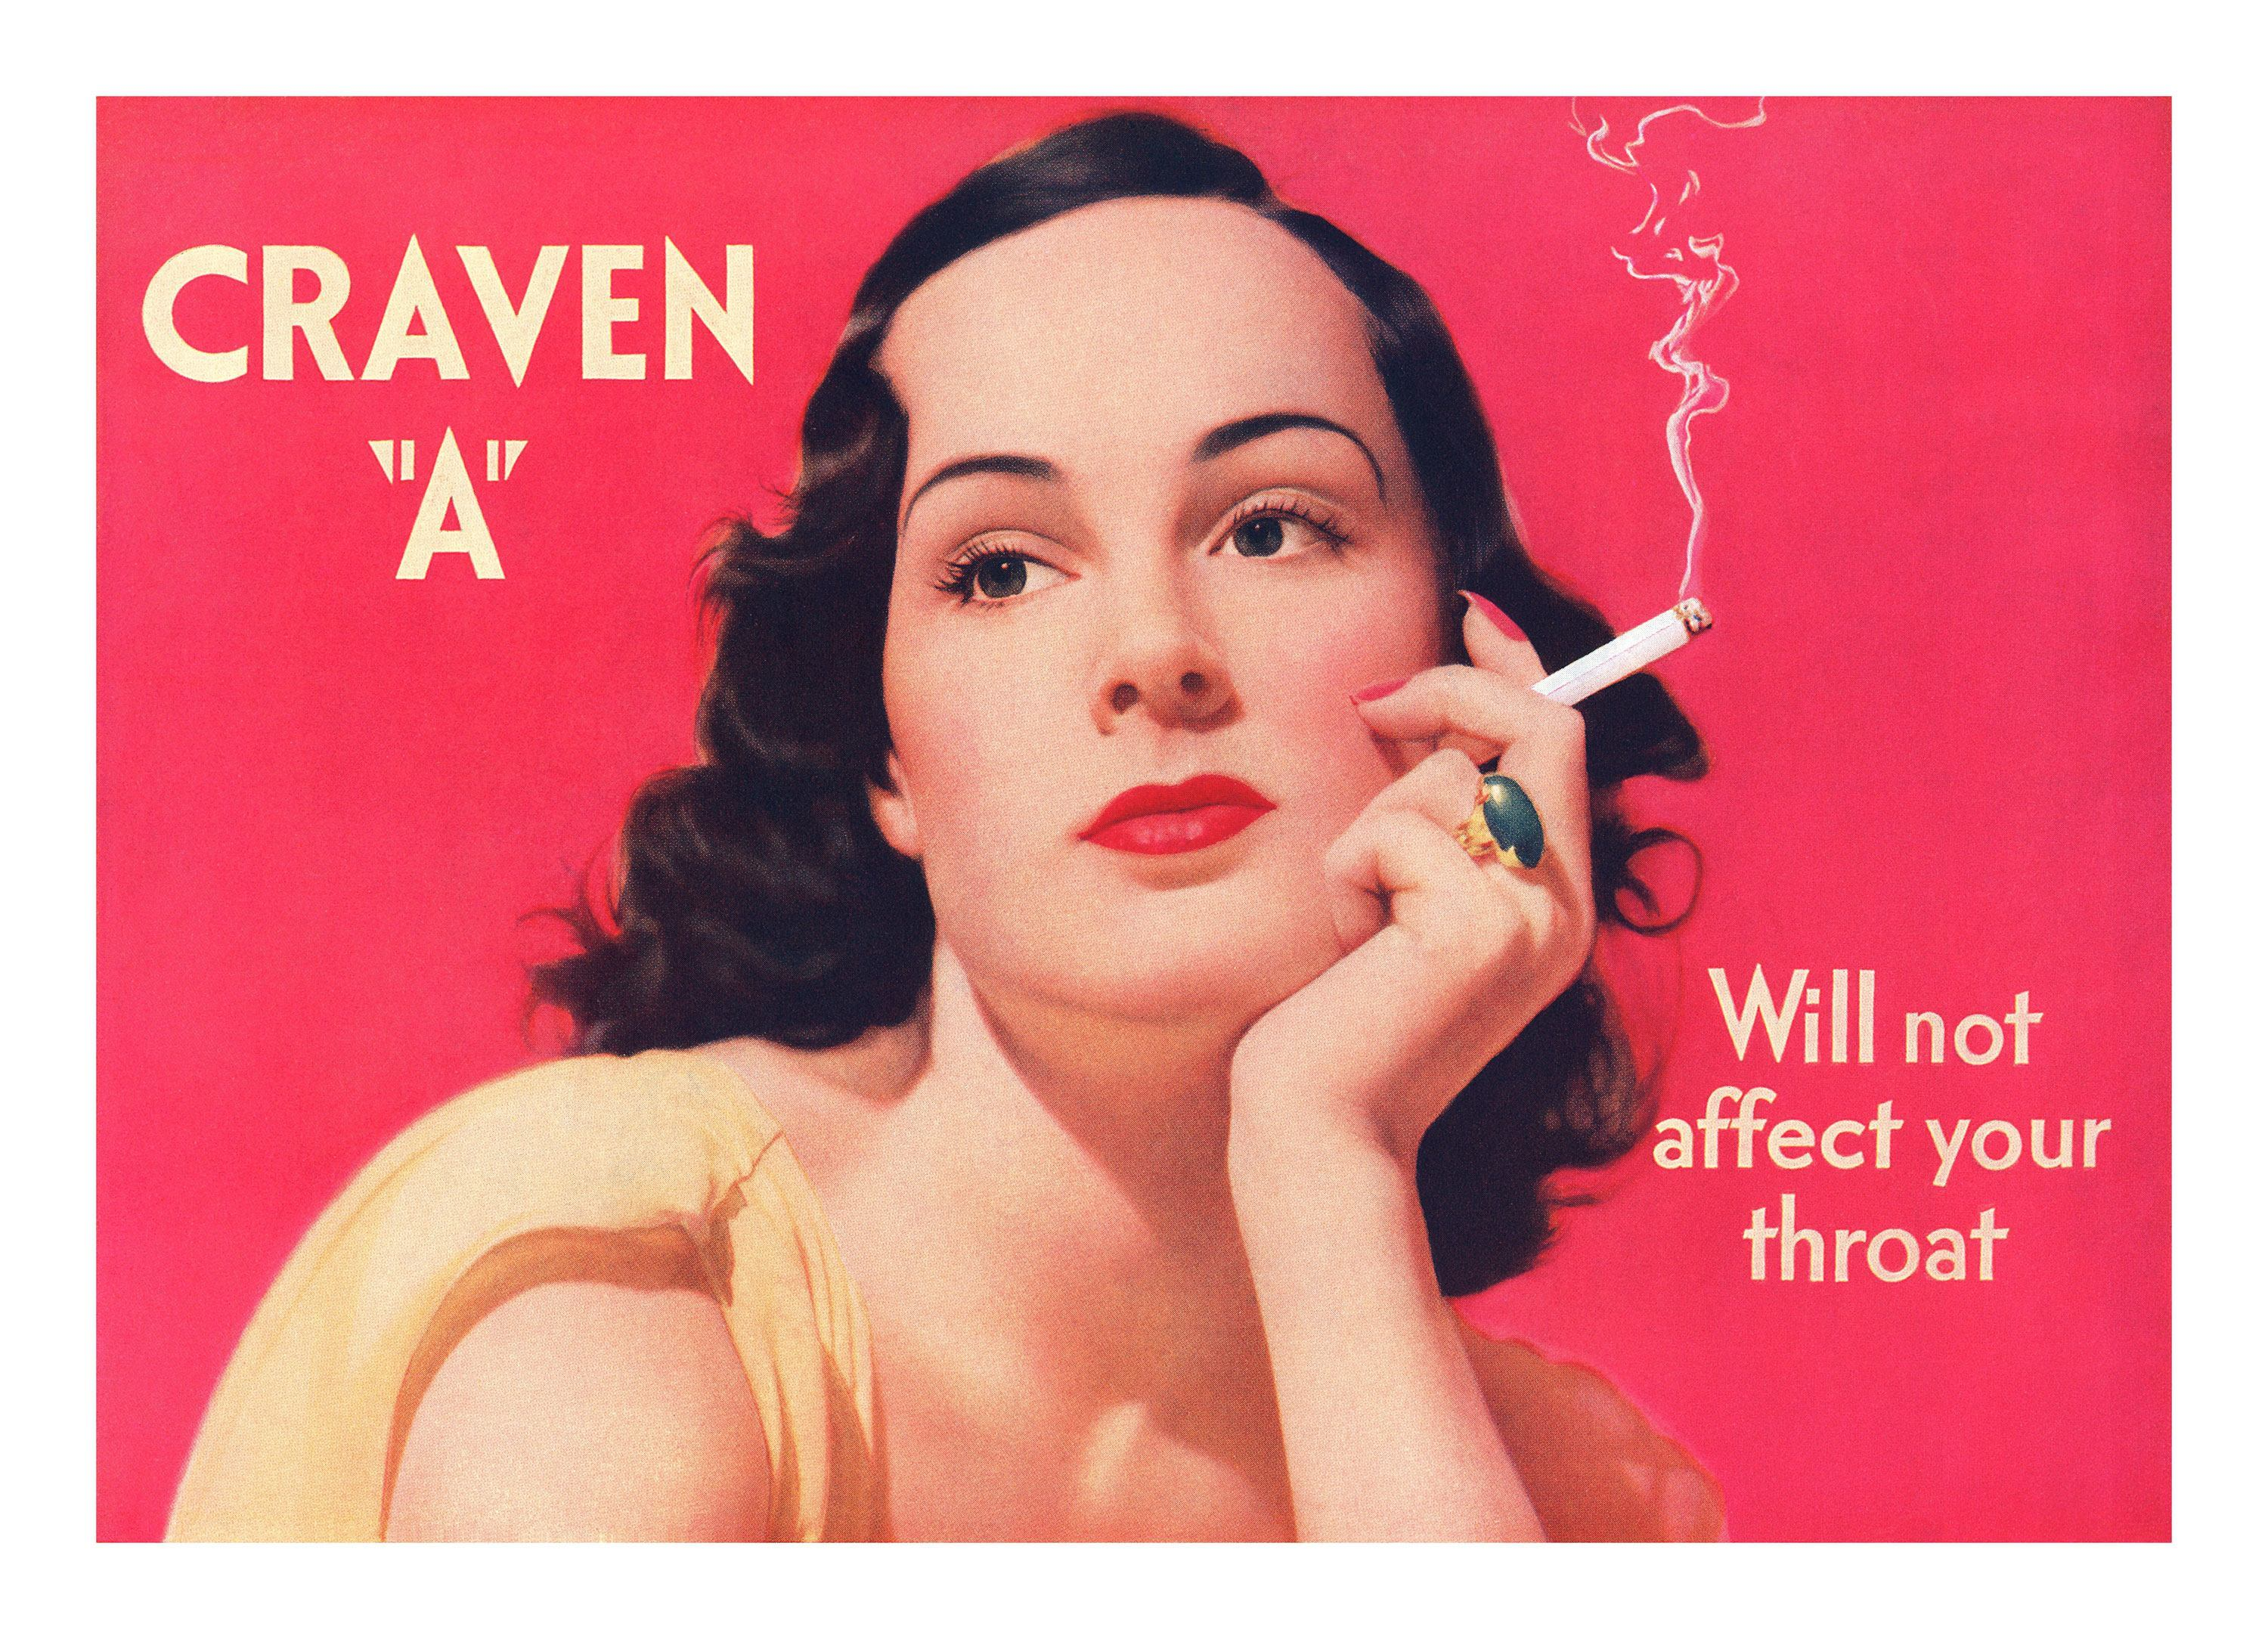 Cigarette Ads In Magazines 2014